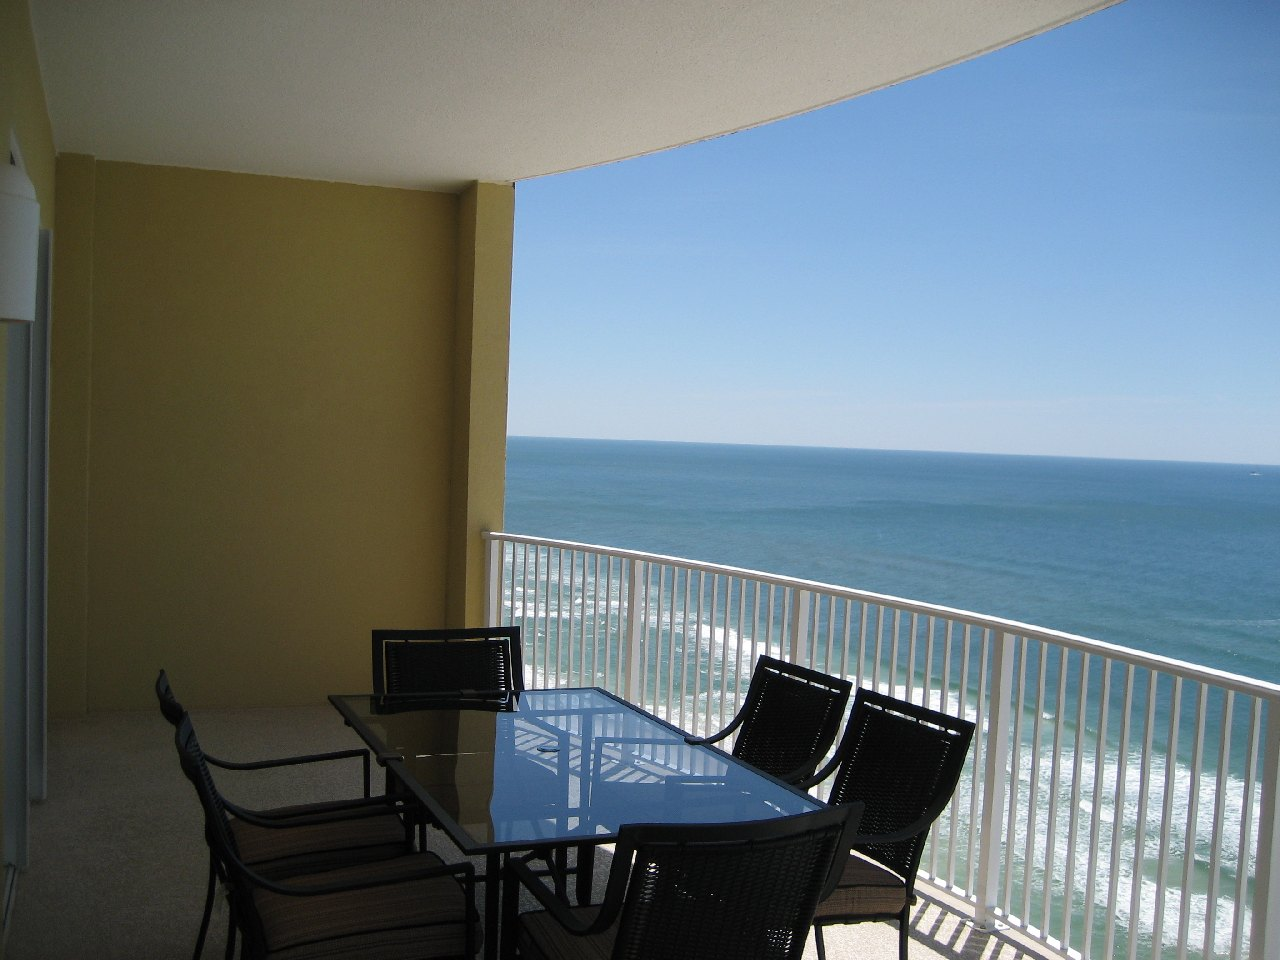 Panama City Beach Florida Condo Rental